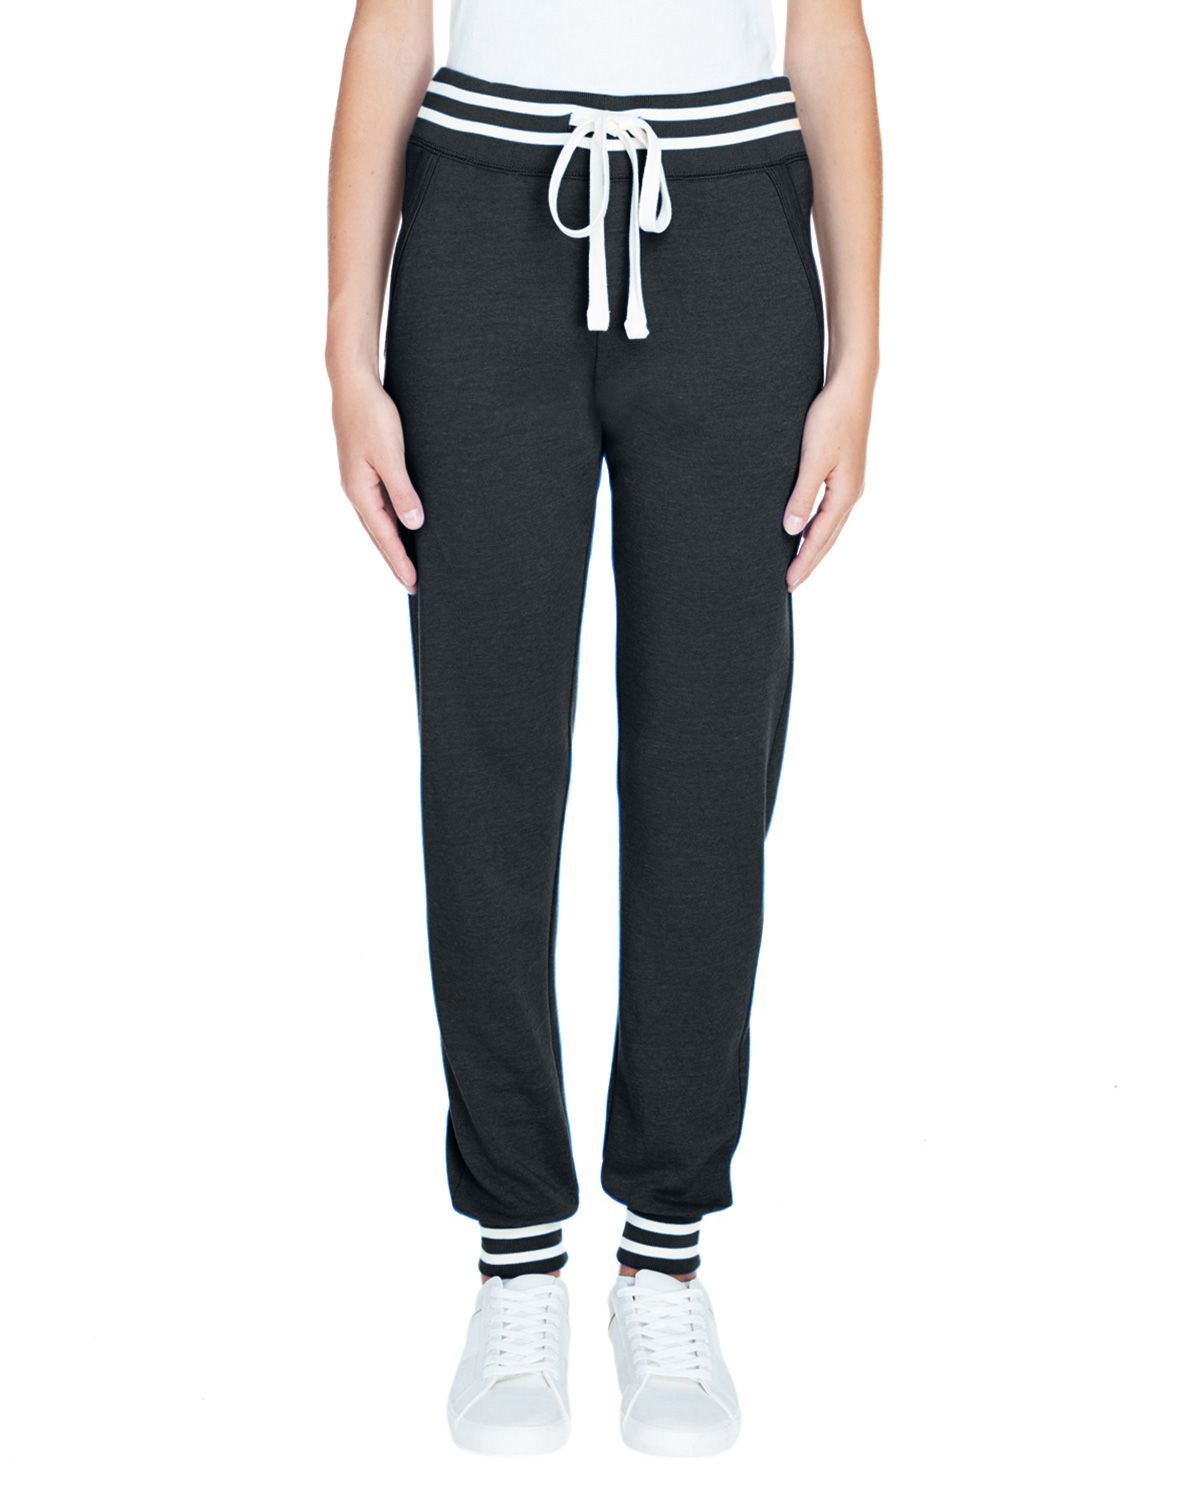 J America JA8654 Women's Relay Jogger - Black - S from J America